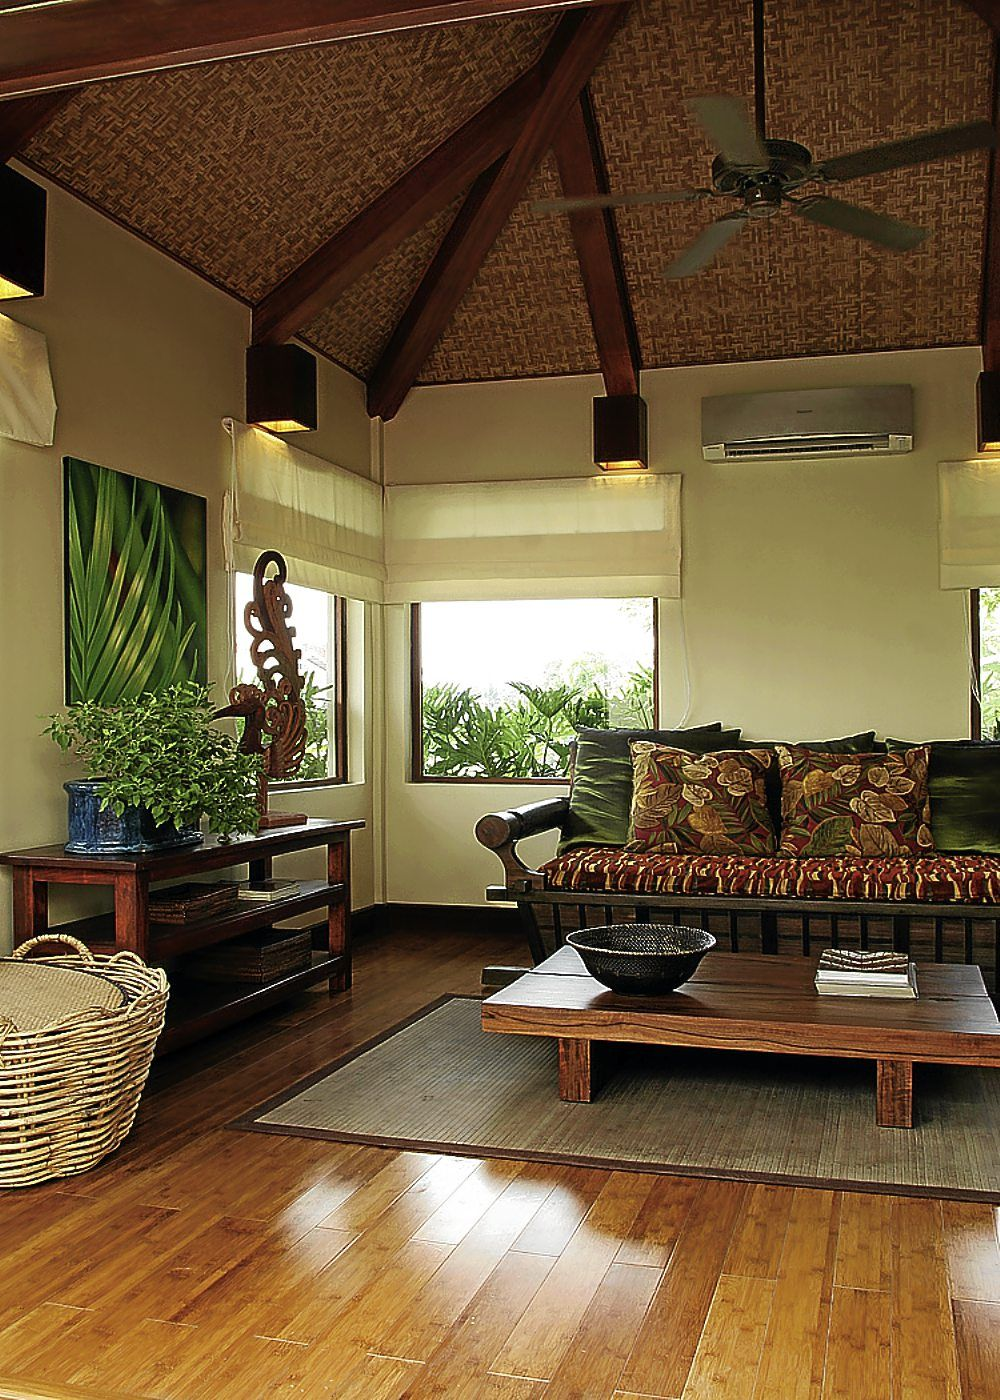 Modern nipa hut design interior